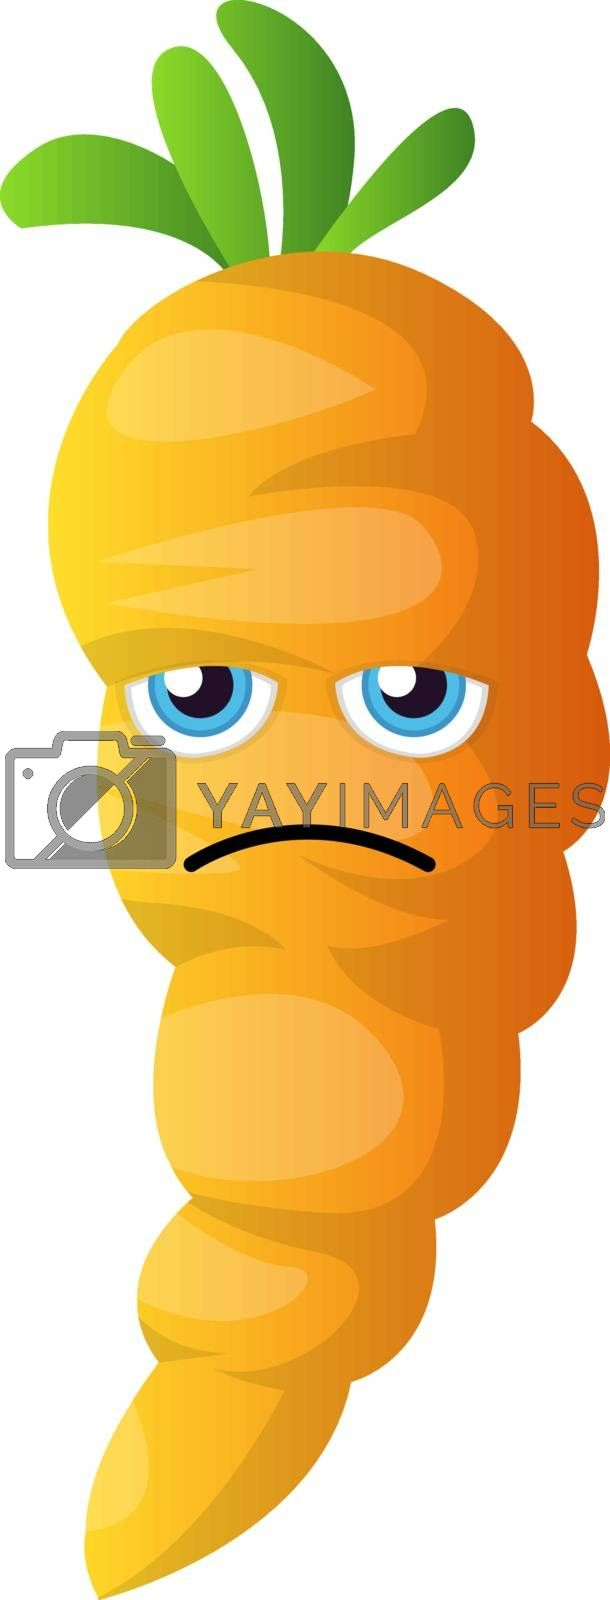 Royalty free image of Sad cartoon carrot illustration vector on white background by Morphart